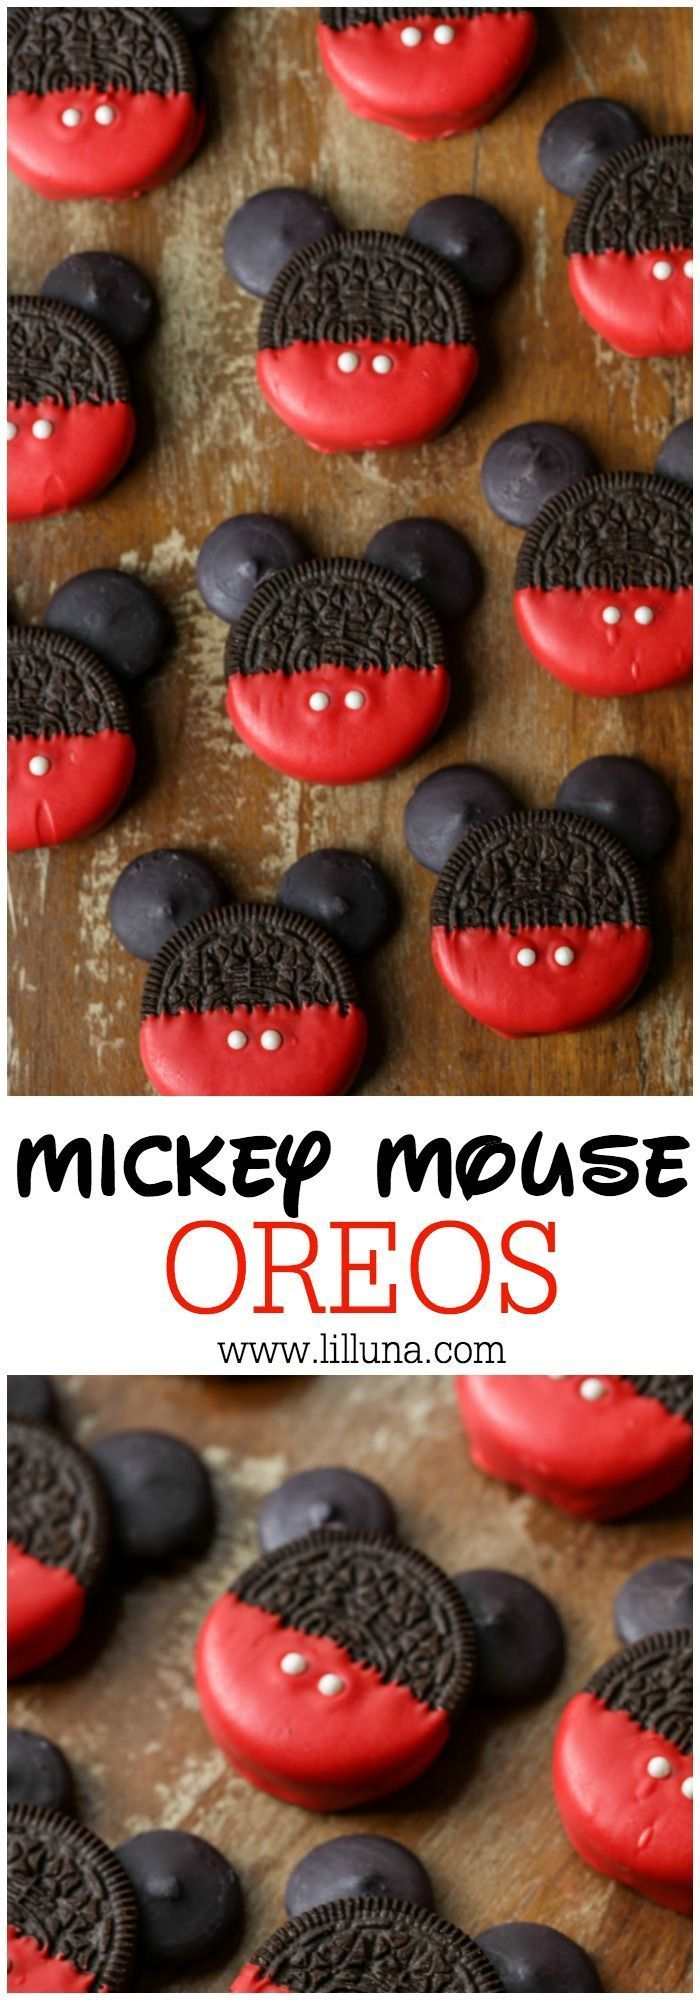 Mickey Mouse Oreos #peachideas